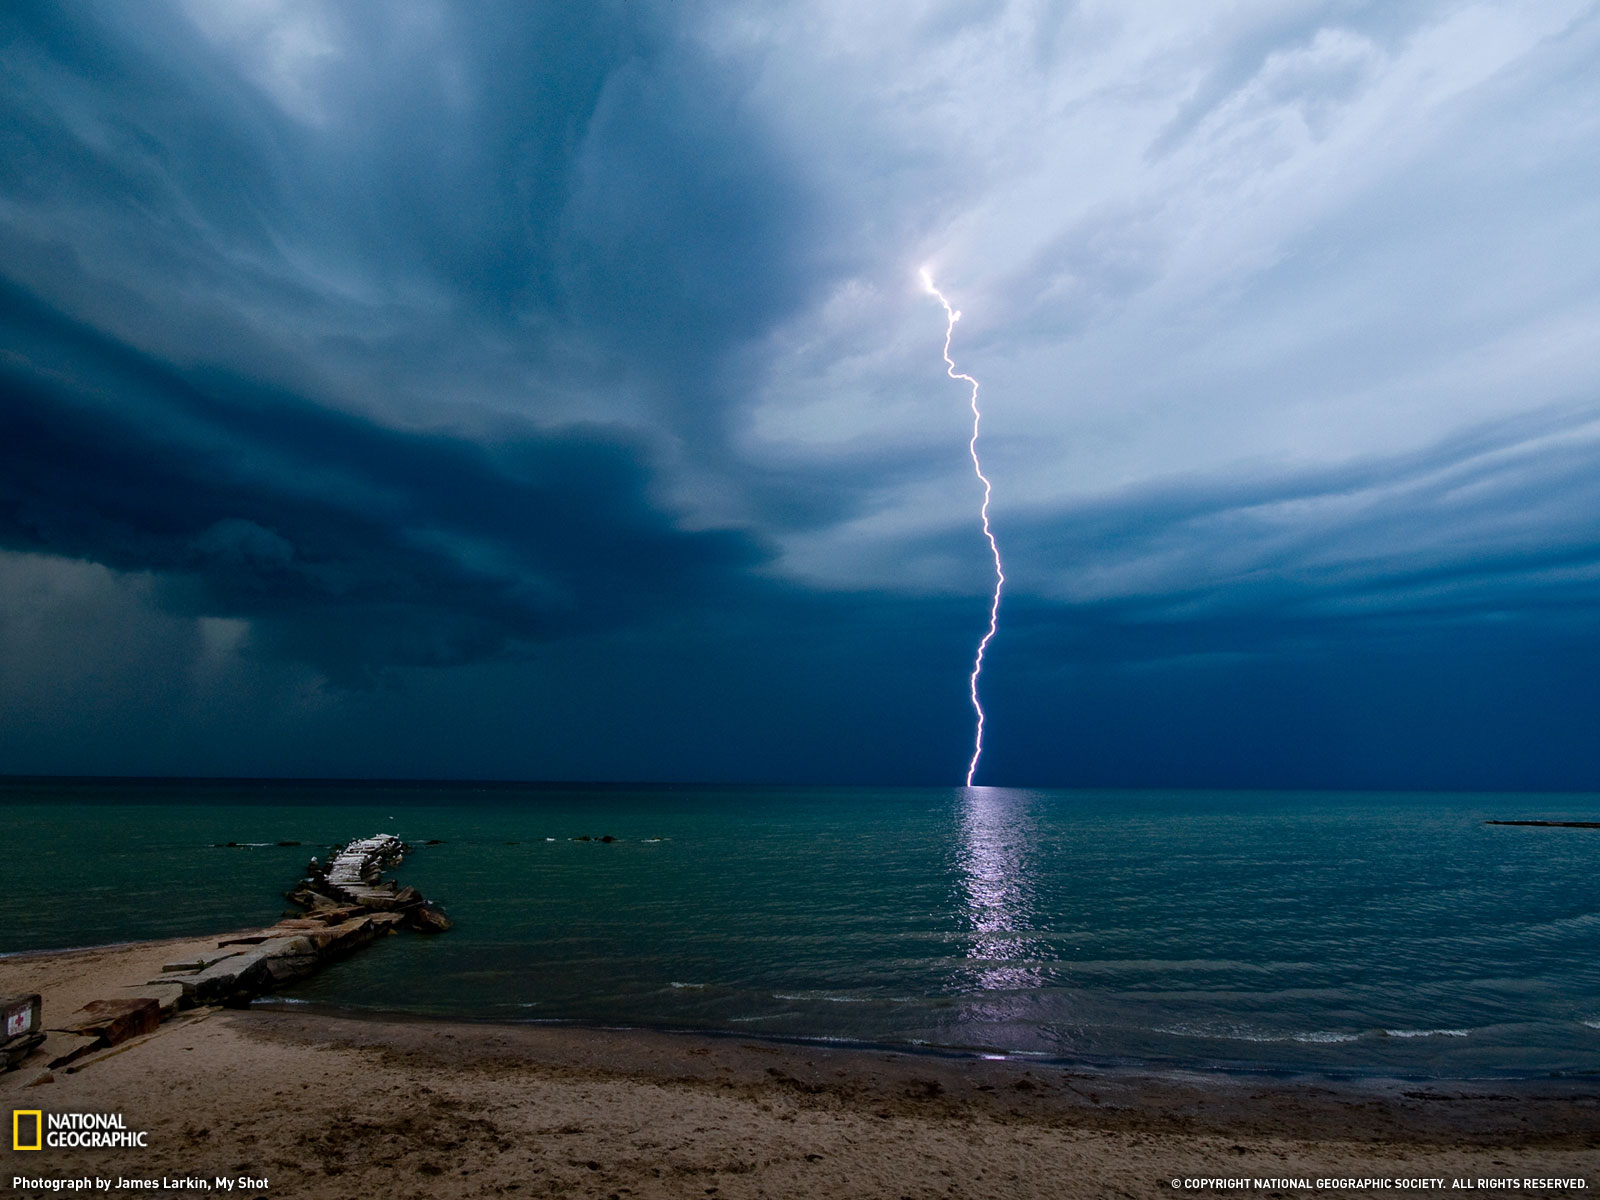 http://3.bp.blogspot.com/-MQg_u9dcZuM/UOm5uz8AXtI/AAAAAAAAKS4/LkFIc4wL0W8/s1600/lightning-huntington-beach-national-geographic-wallpaper.jpg